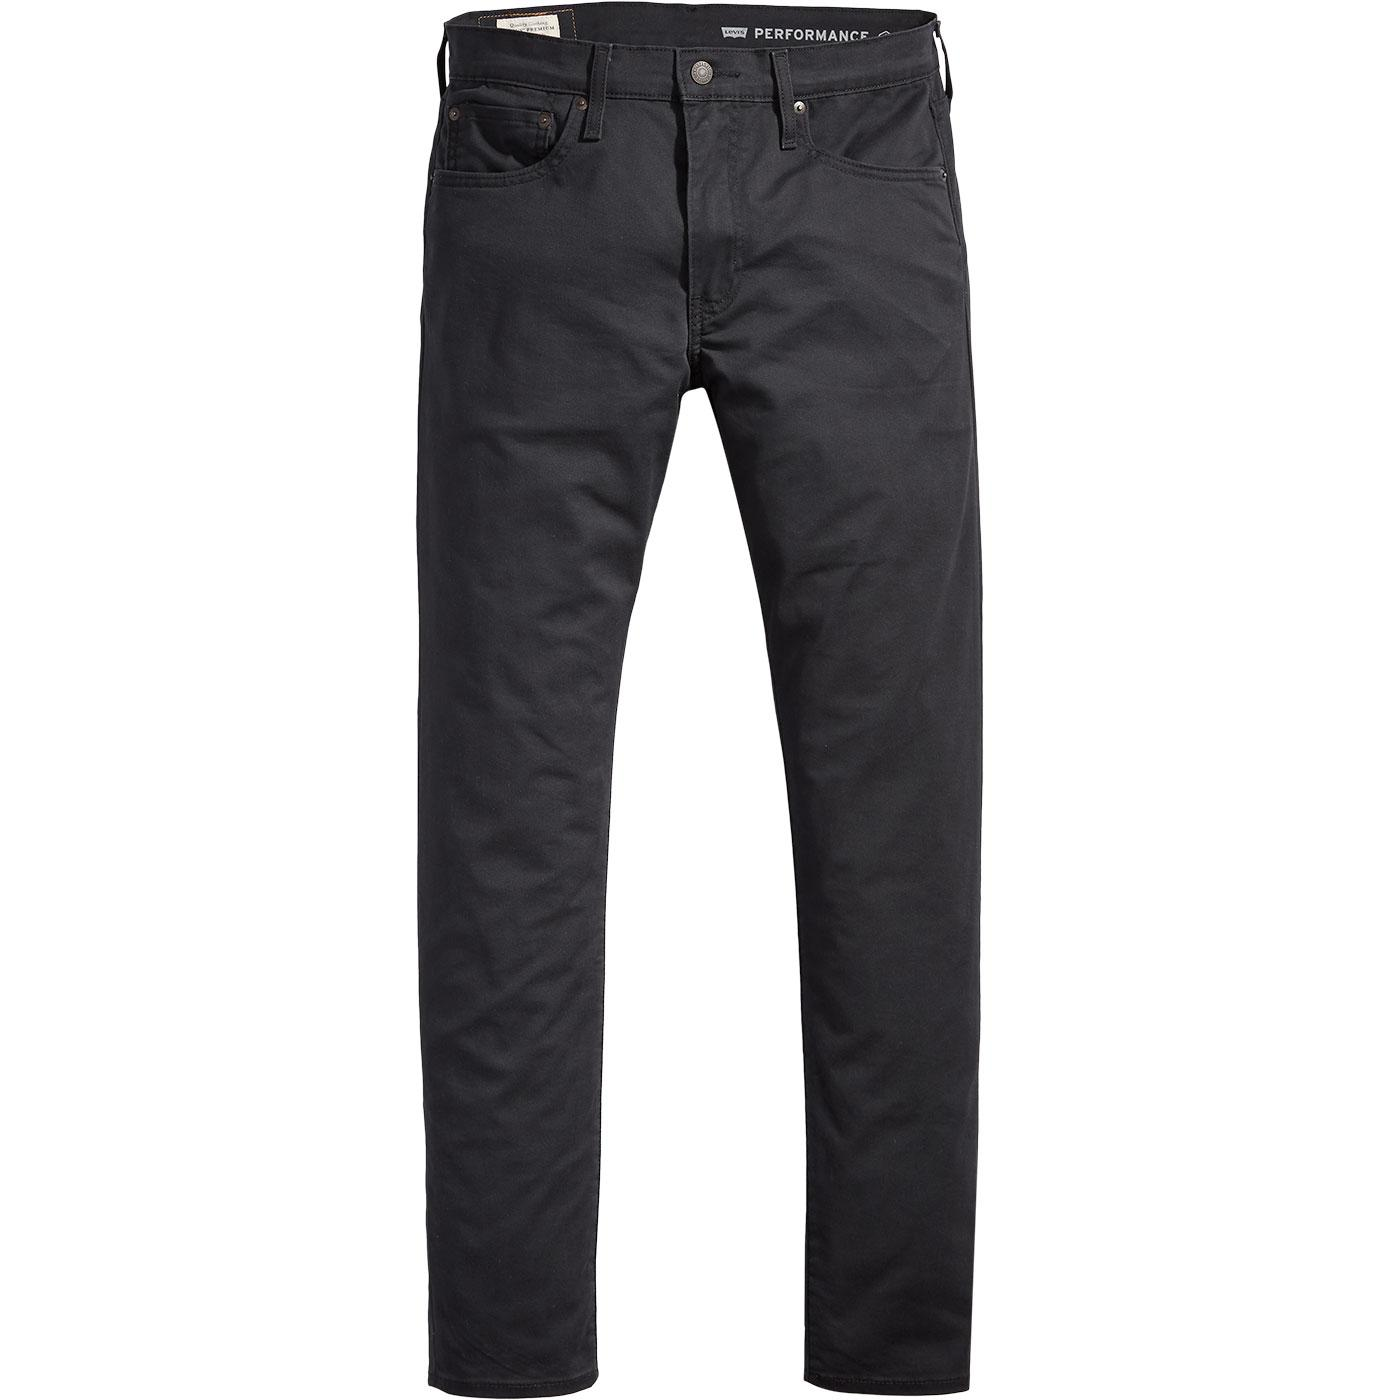 LEVI'S 512 Men's Retro Slim Taper Chinos (Caviar)